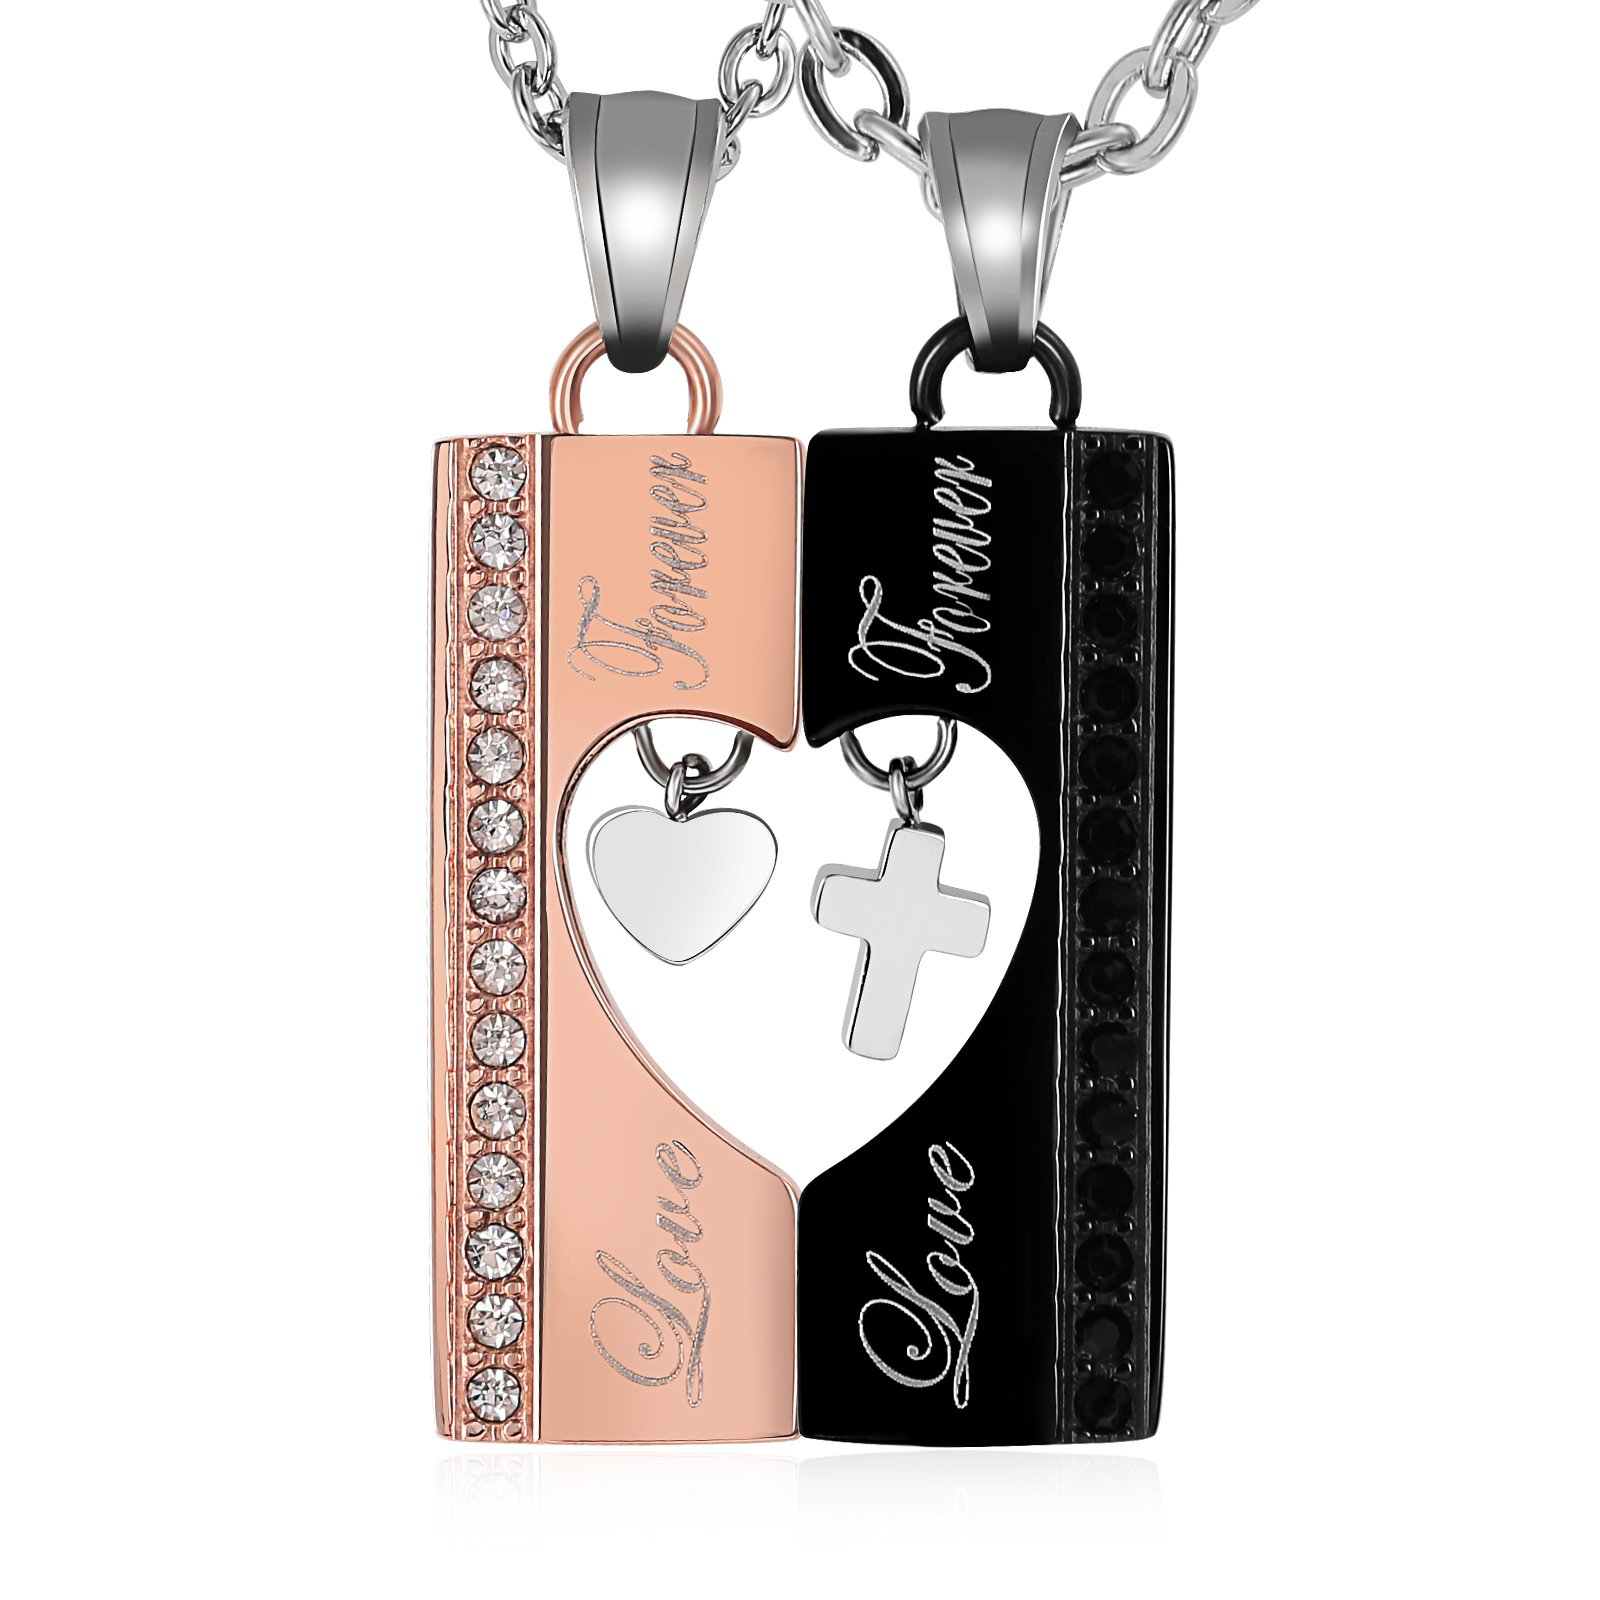 Aienid Womens and Mens Necklaces Set Stainless Steel CZ Love Cross Roads Pendant Necklace Black & Rose Gold